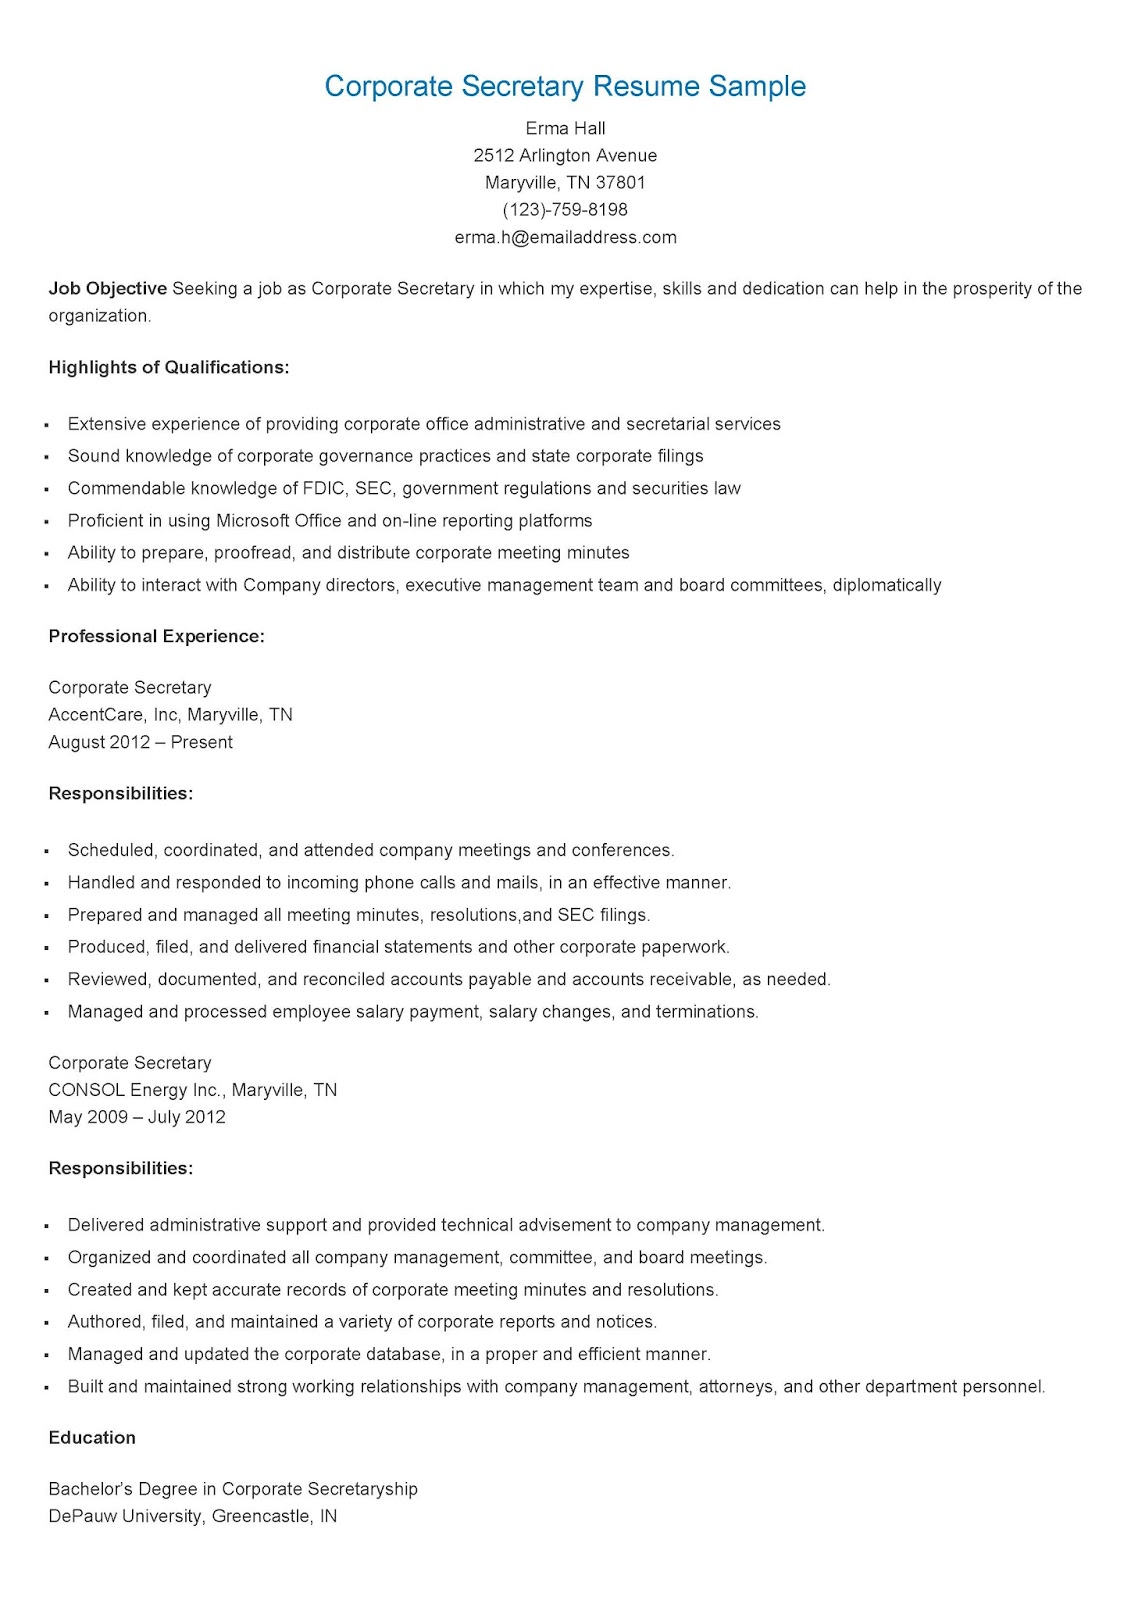 resume samples  corporate secretary resume sample